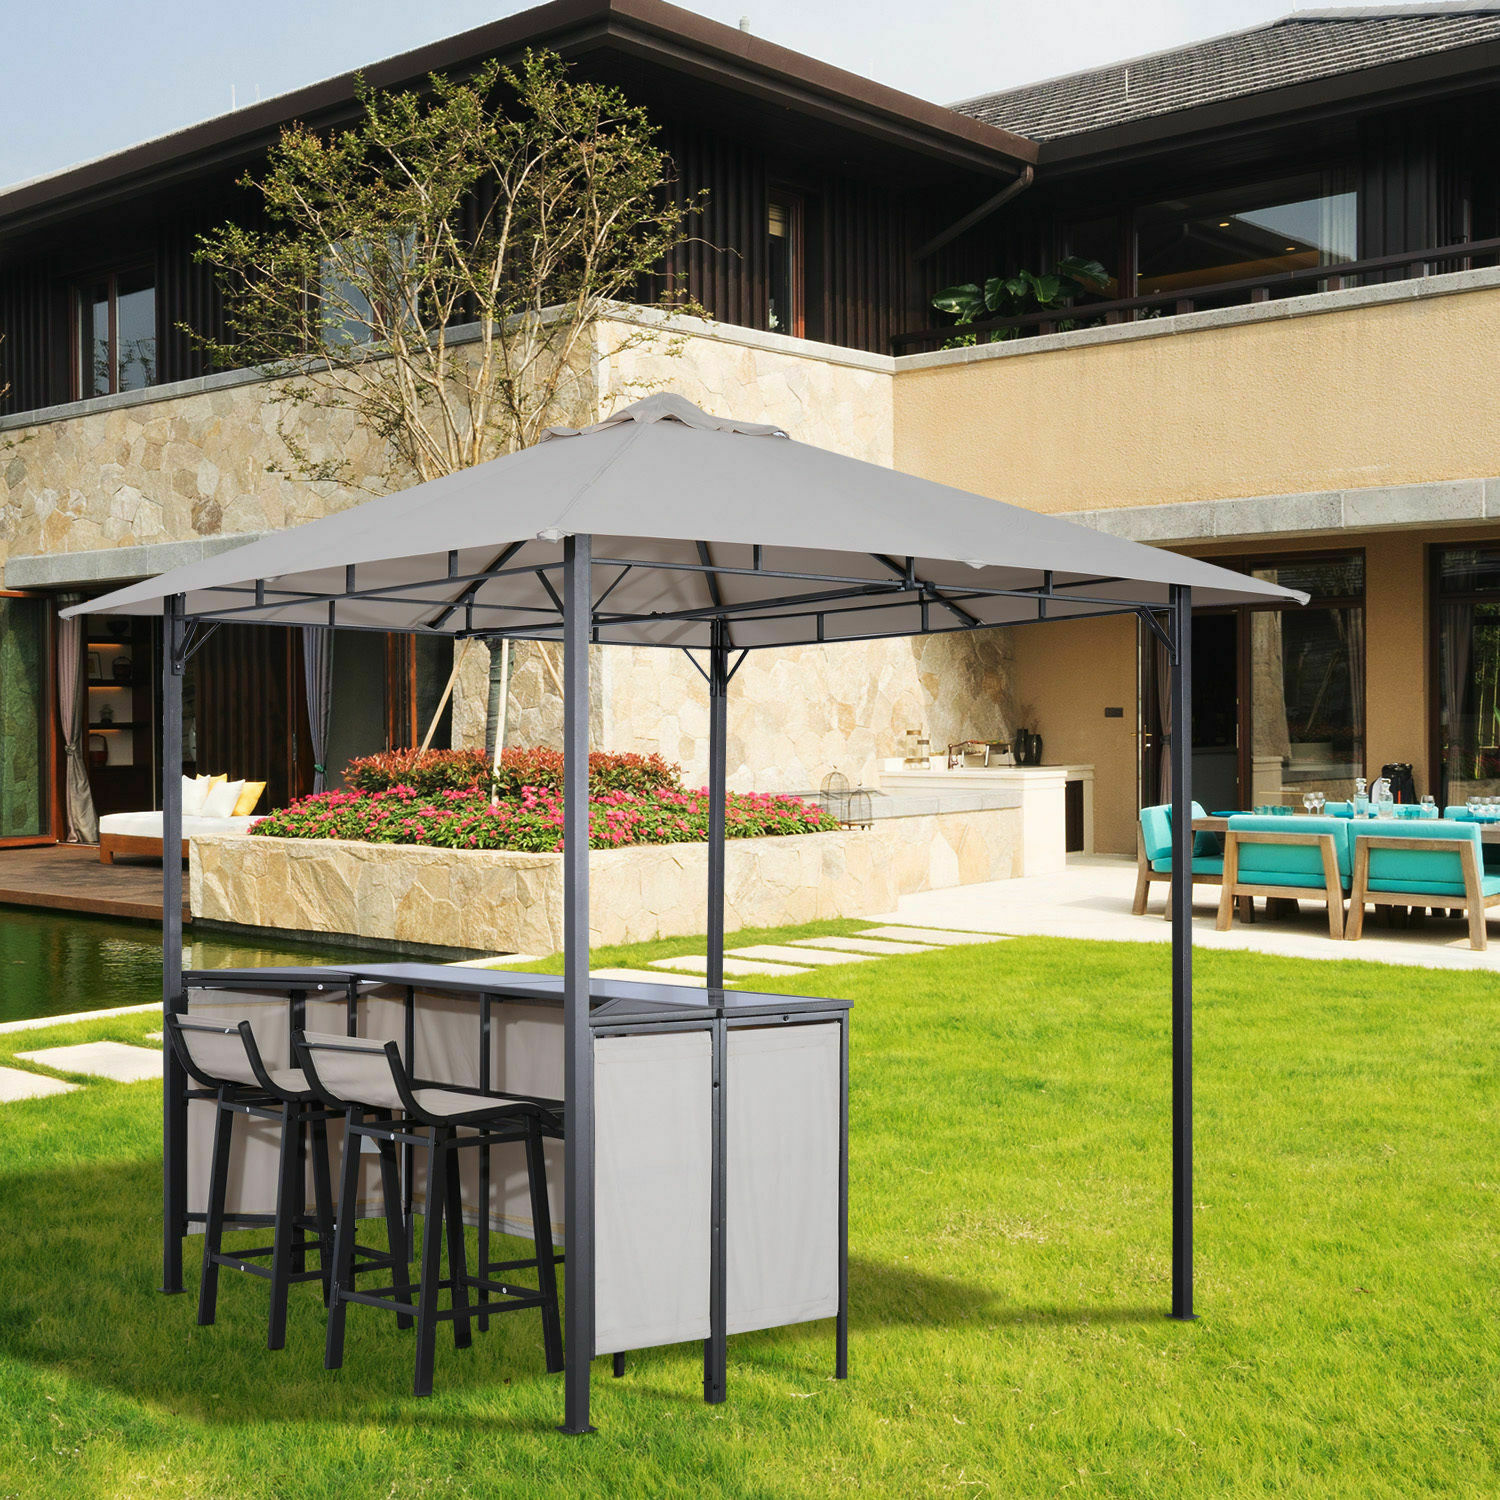 3pc Outdoor Patio Bar Table Set Chairs